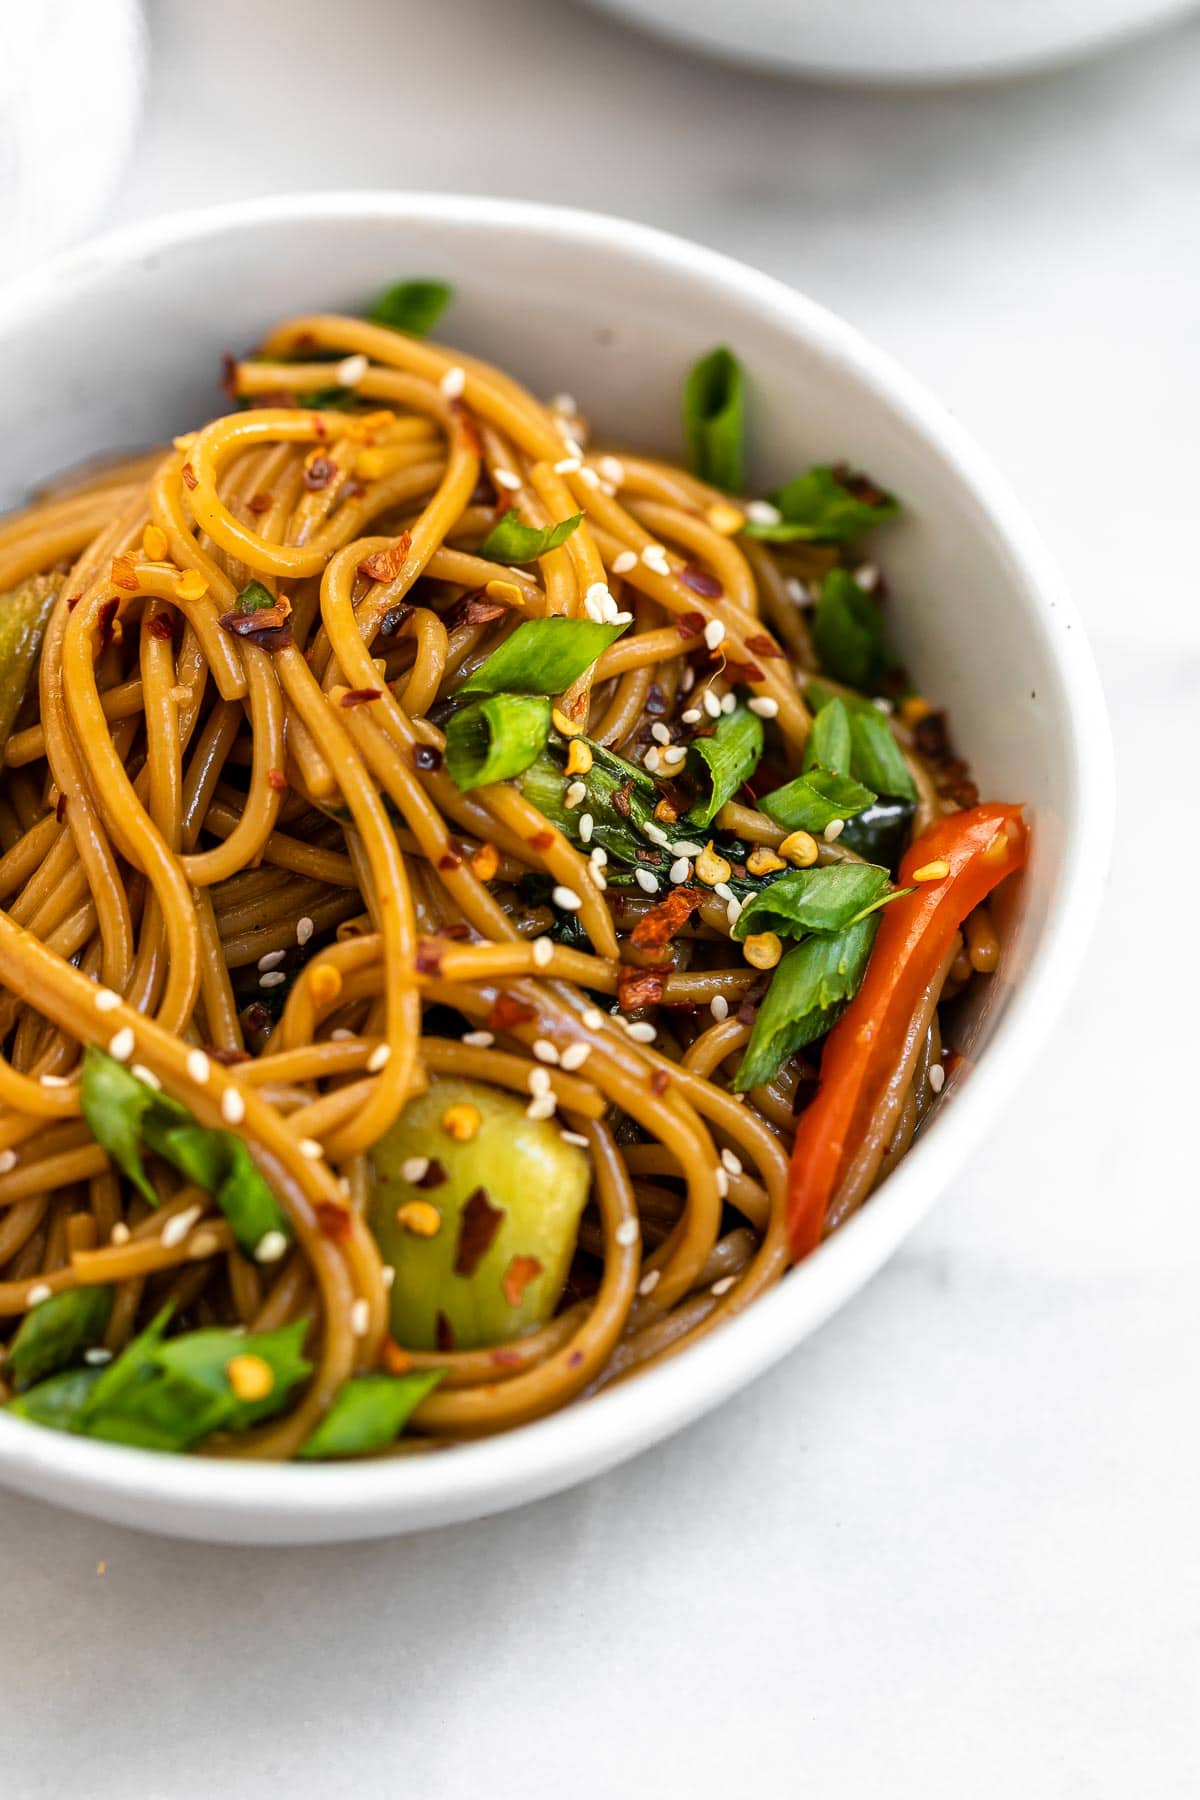 Angled view of the teriyaki noodles with sesame seeds on top.